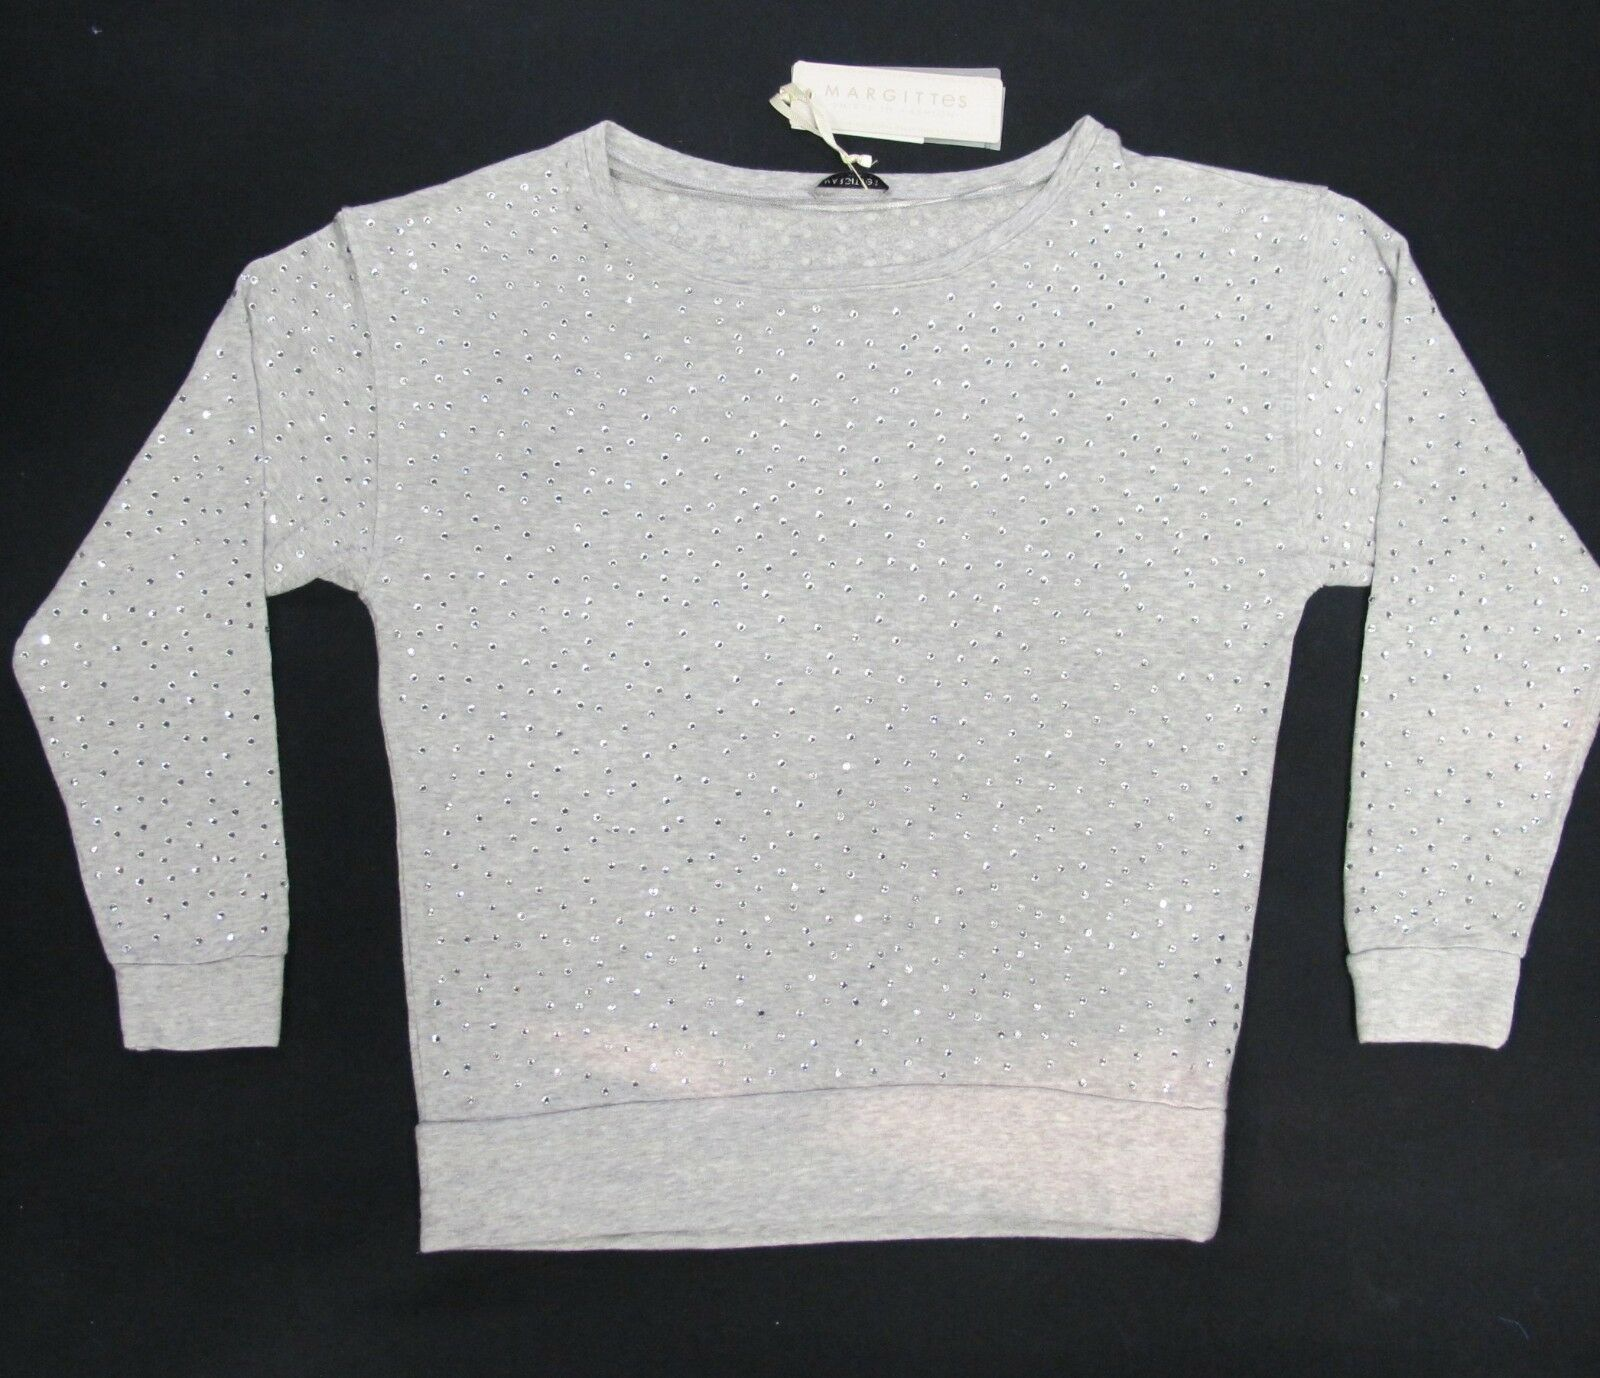 Margittes Sweatshirt Sweatshirt Sweatshirt Art. 26543 1412 Grau  Gr. 38,40  129,00 | Up-to-date Styling  3649d1